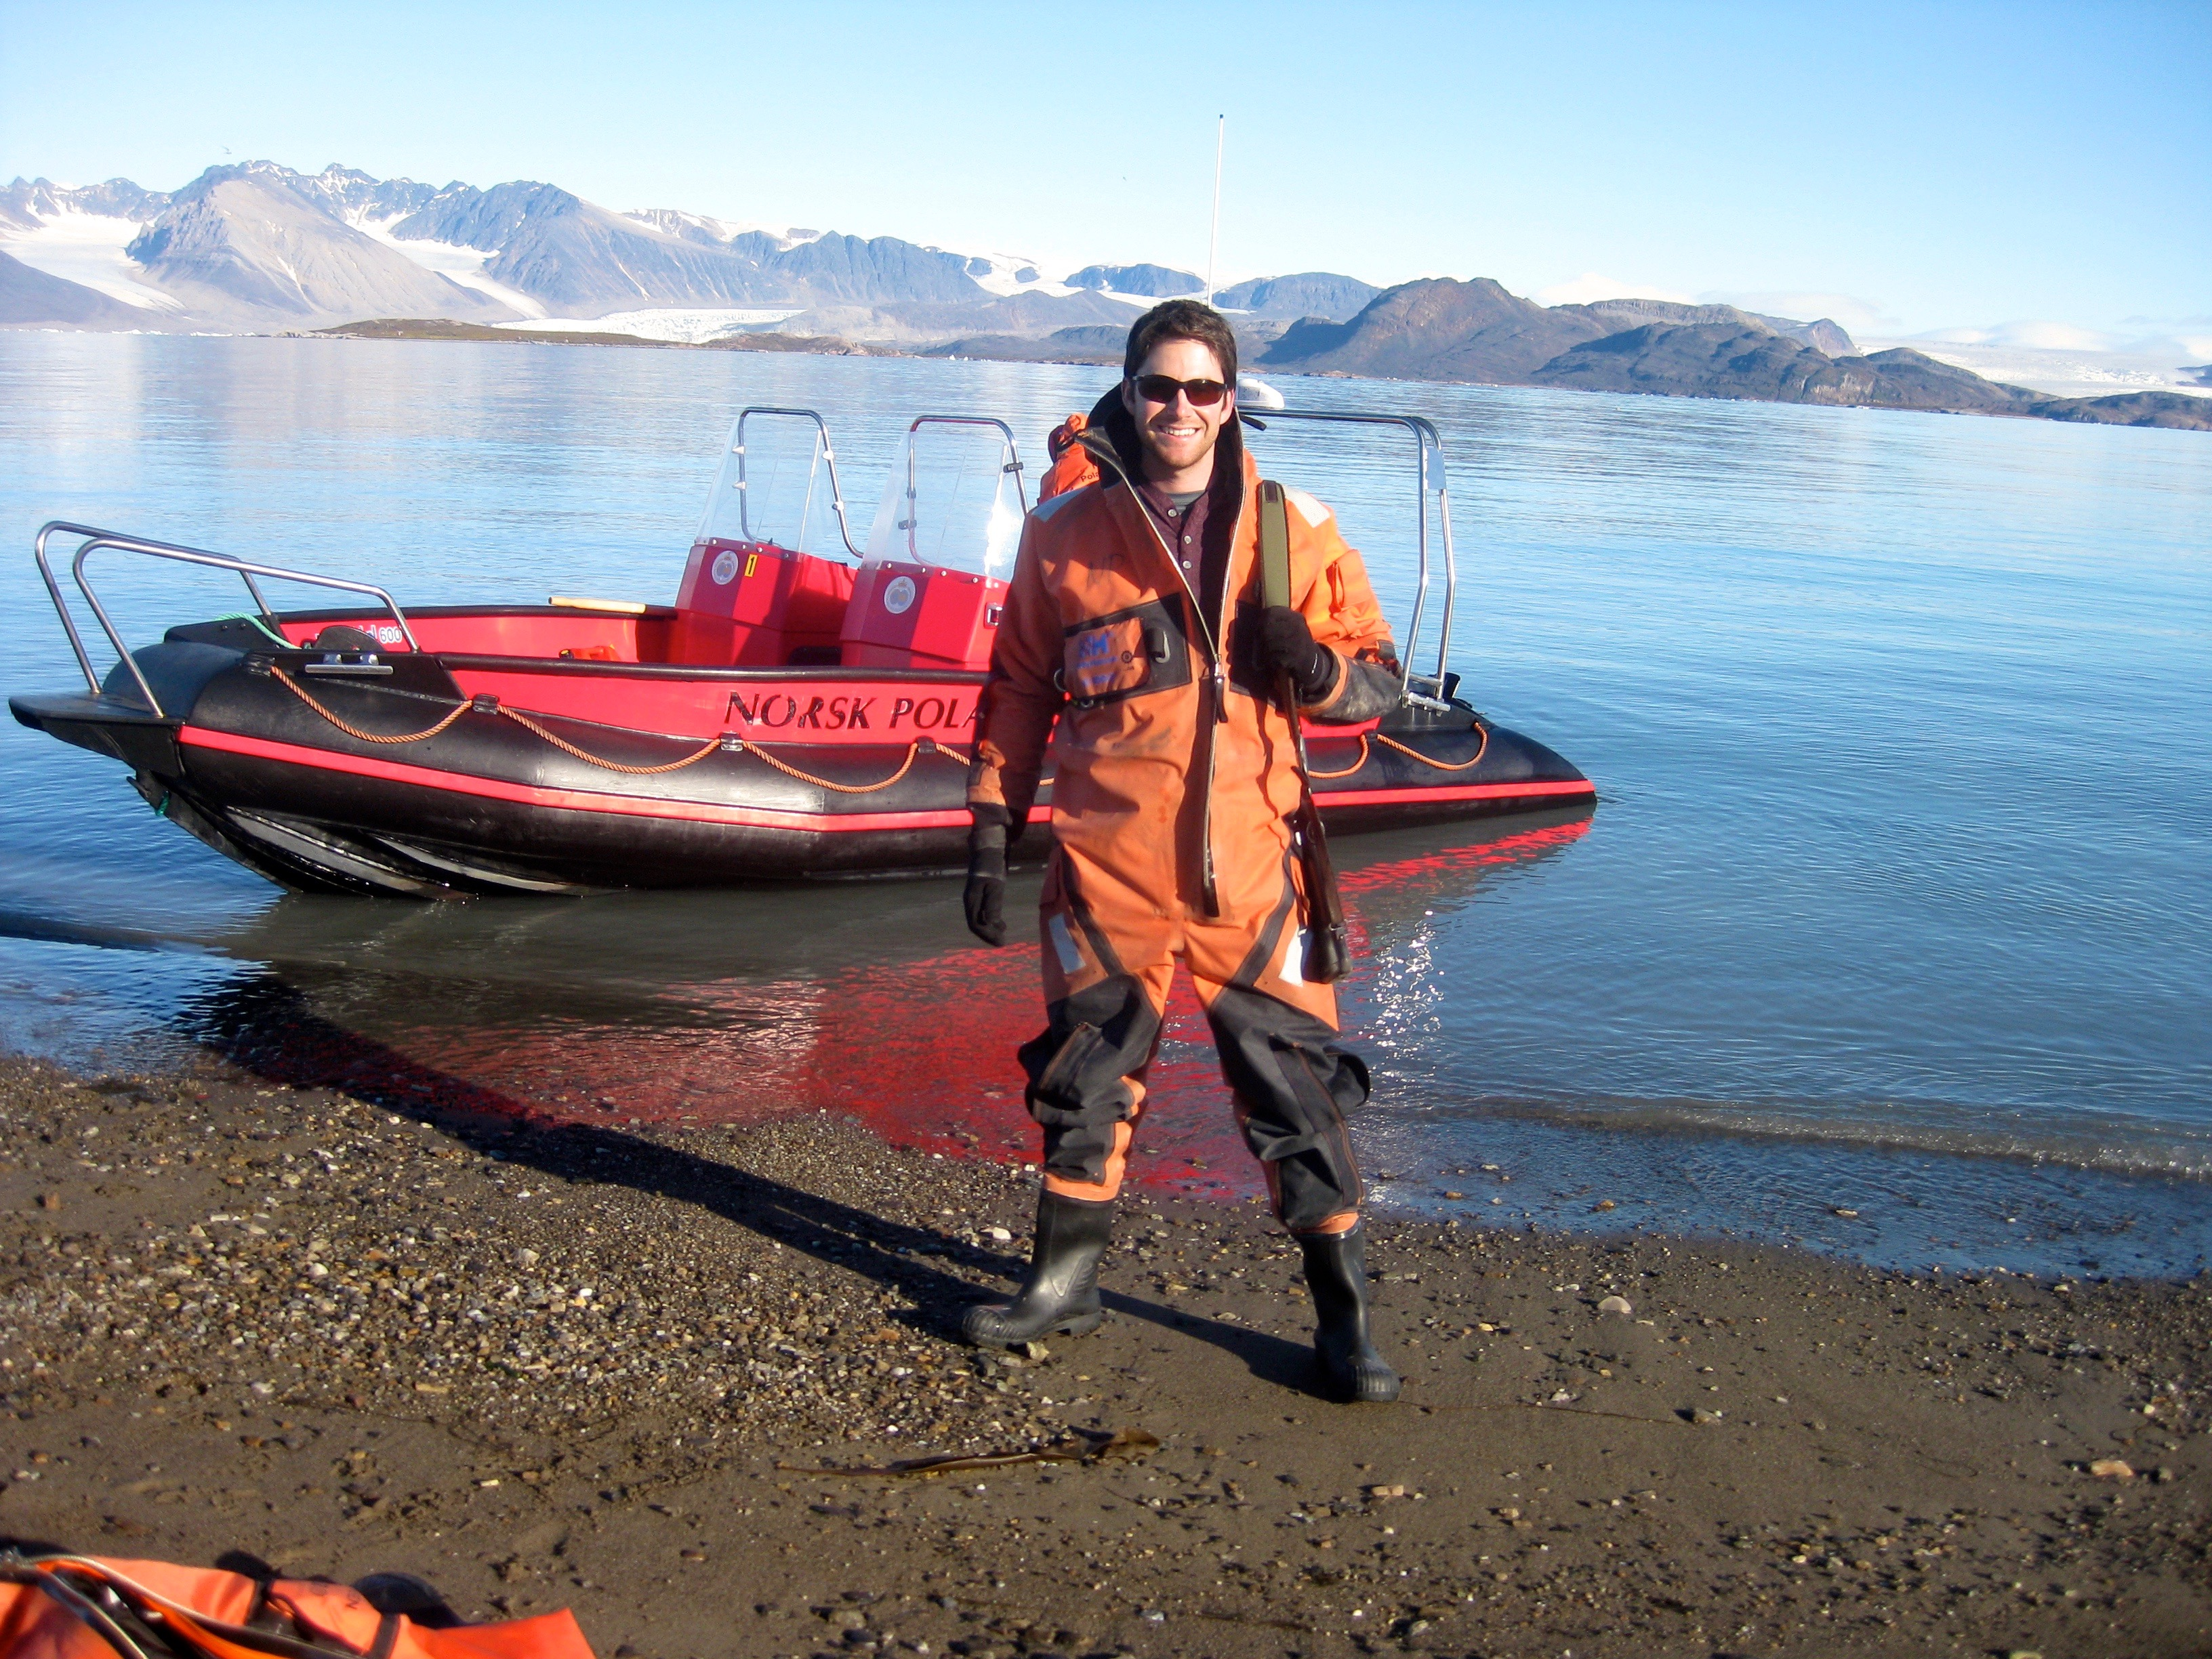 Myself suited up in a drysuit before taking the boat out to collect glacial runoff samples (again near Ny-Ålesund, Norway) in summer